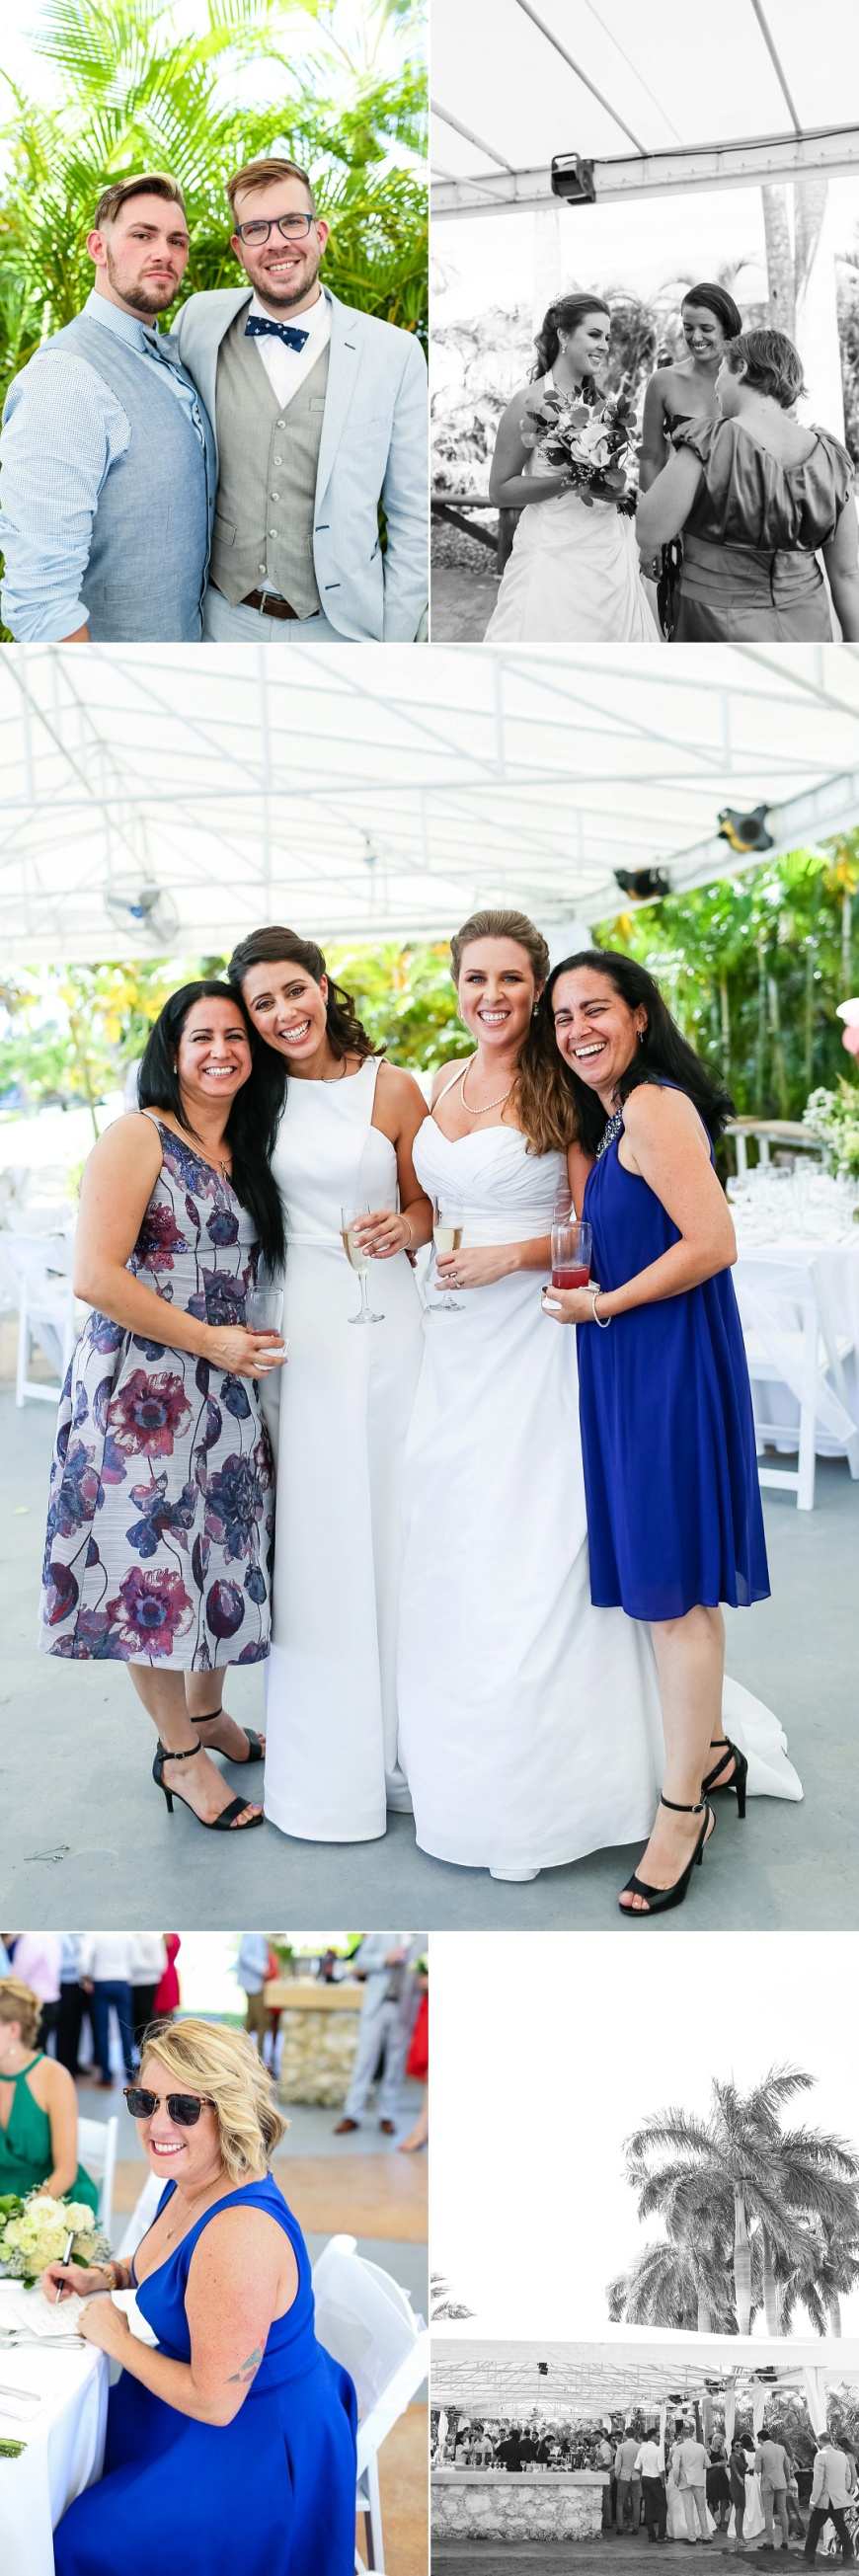 Royal-Palm-Island-Miami-Wedding-Photographer_1059.jpg